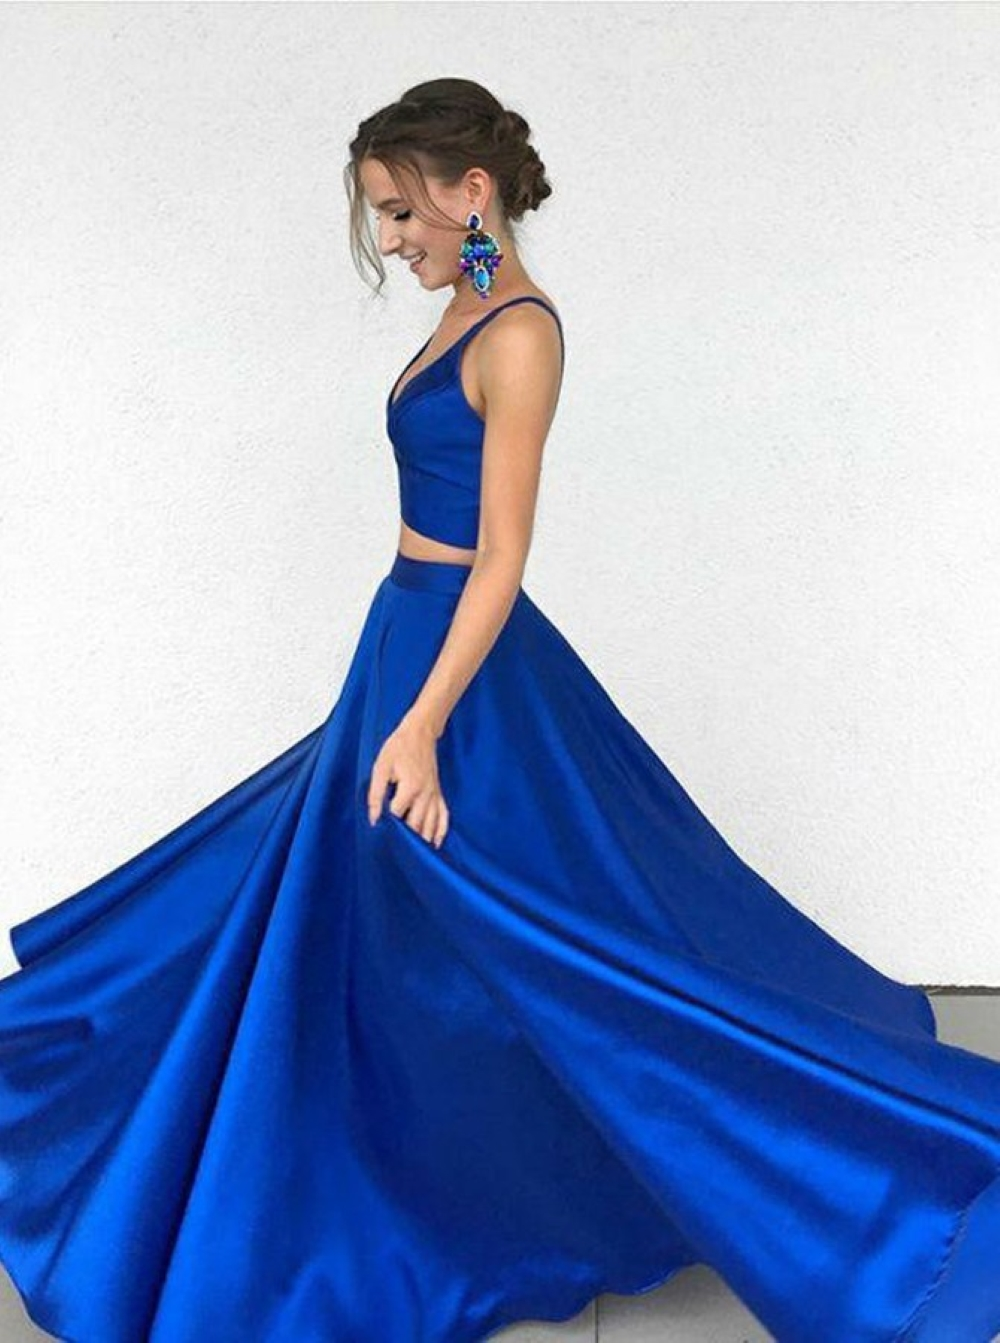 Bbonlinedress 2019 2-Piece   Prom     Dress   New Arrival A Line   Prom   Gowns Crop Top Satin Evening   Dress   Formal Party   Dresses